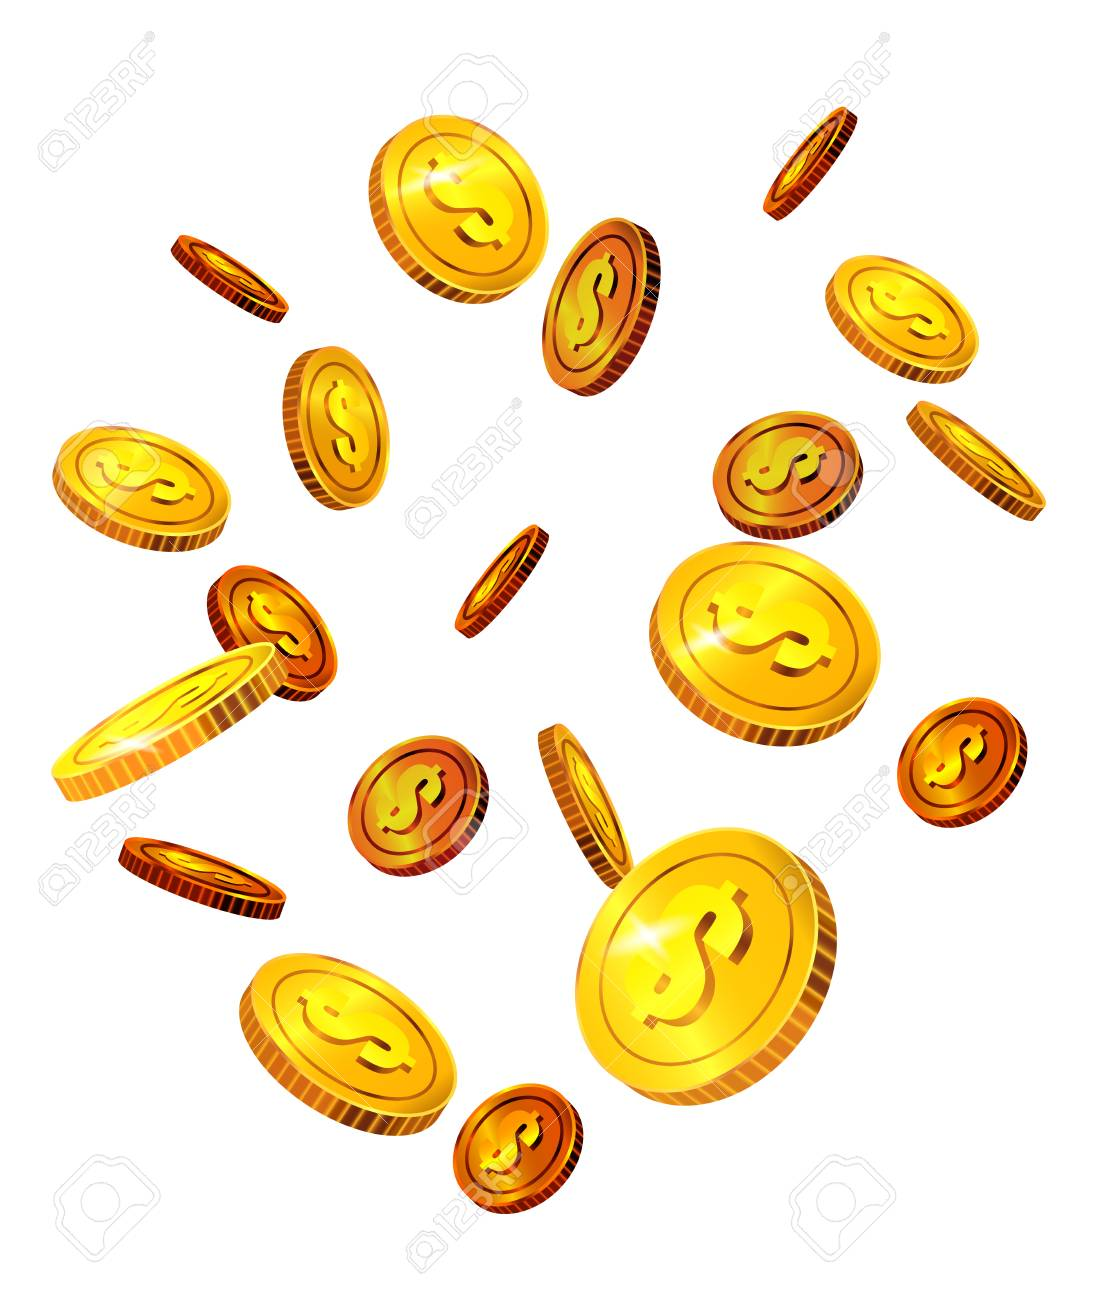 Falling Dollar Coins Success Luck Money Investment Concept